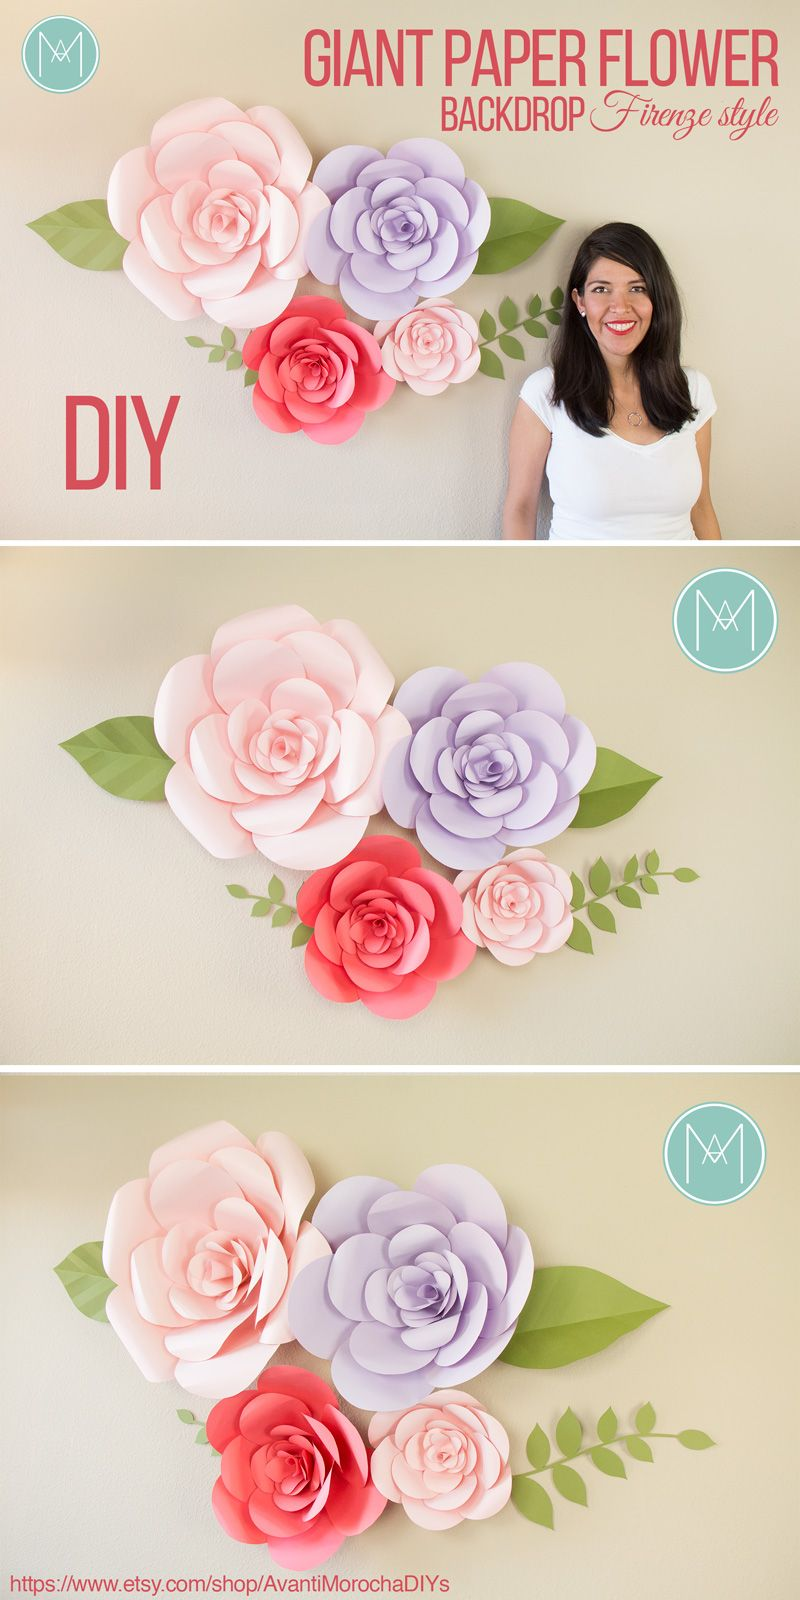 Diy giant paper flower backdrop firenze style Style me up fashion tape creations